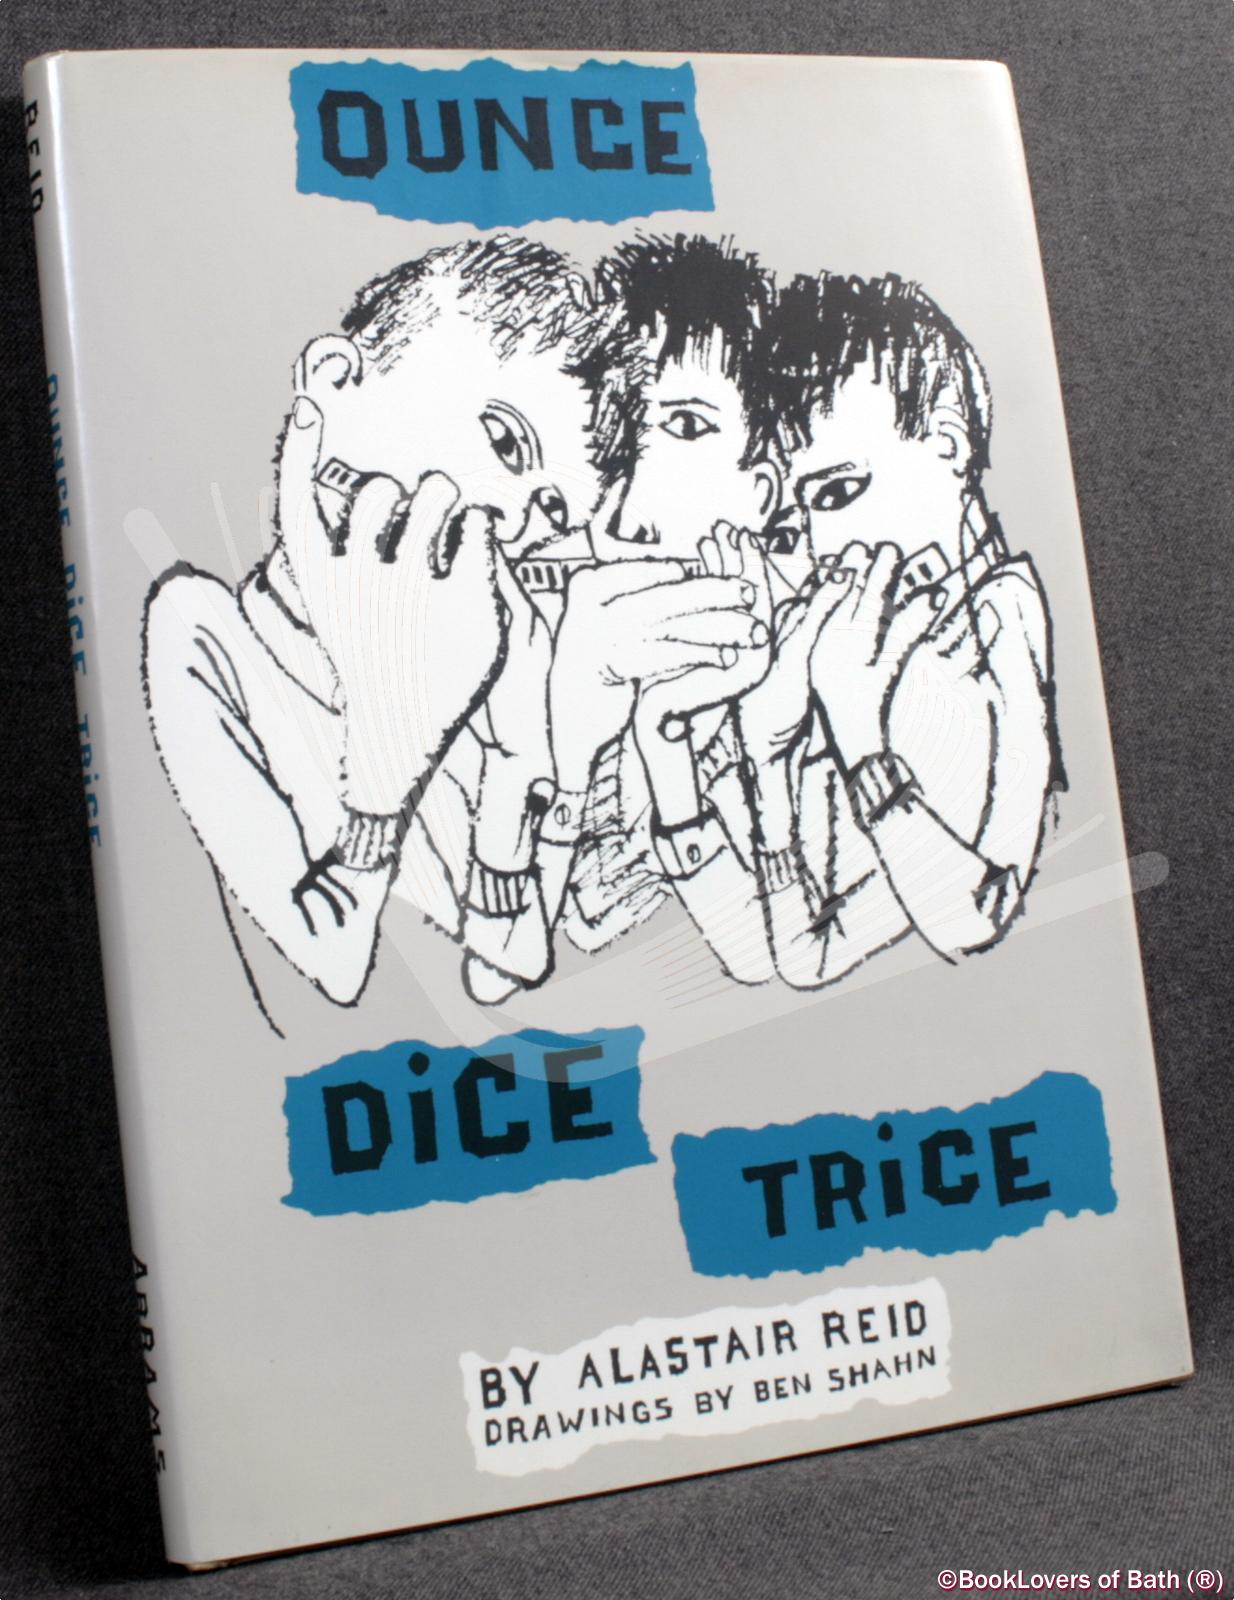 Ounce Dice Trice - Alastair Reid